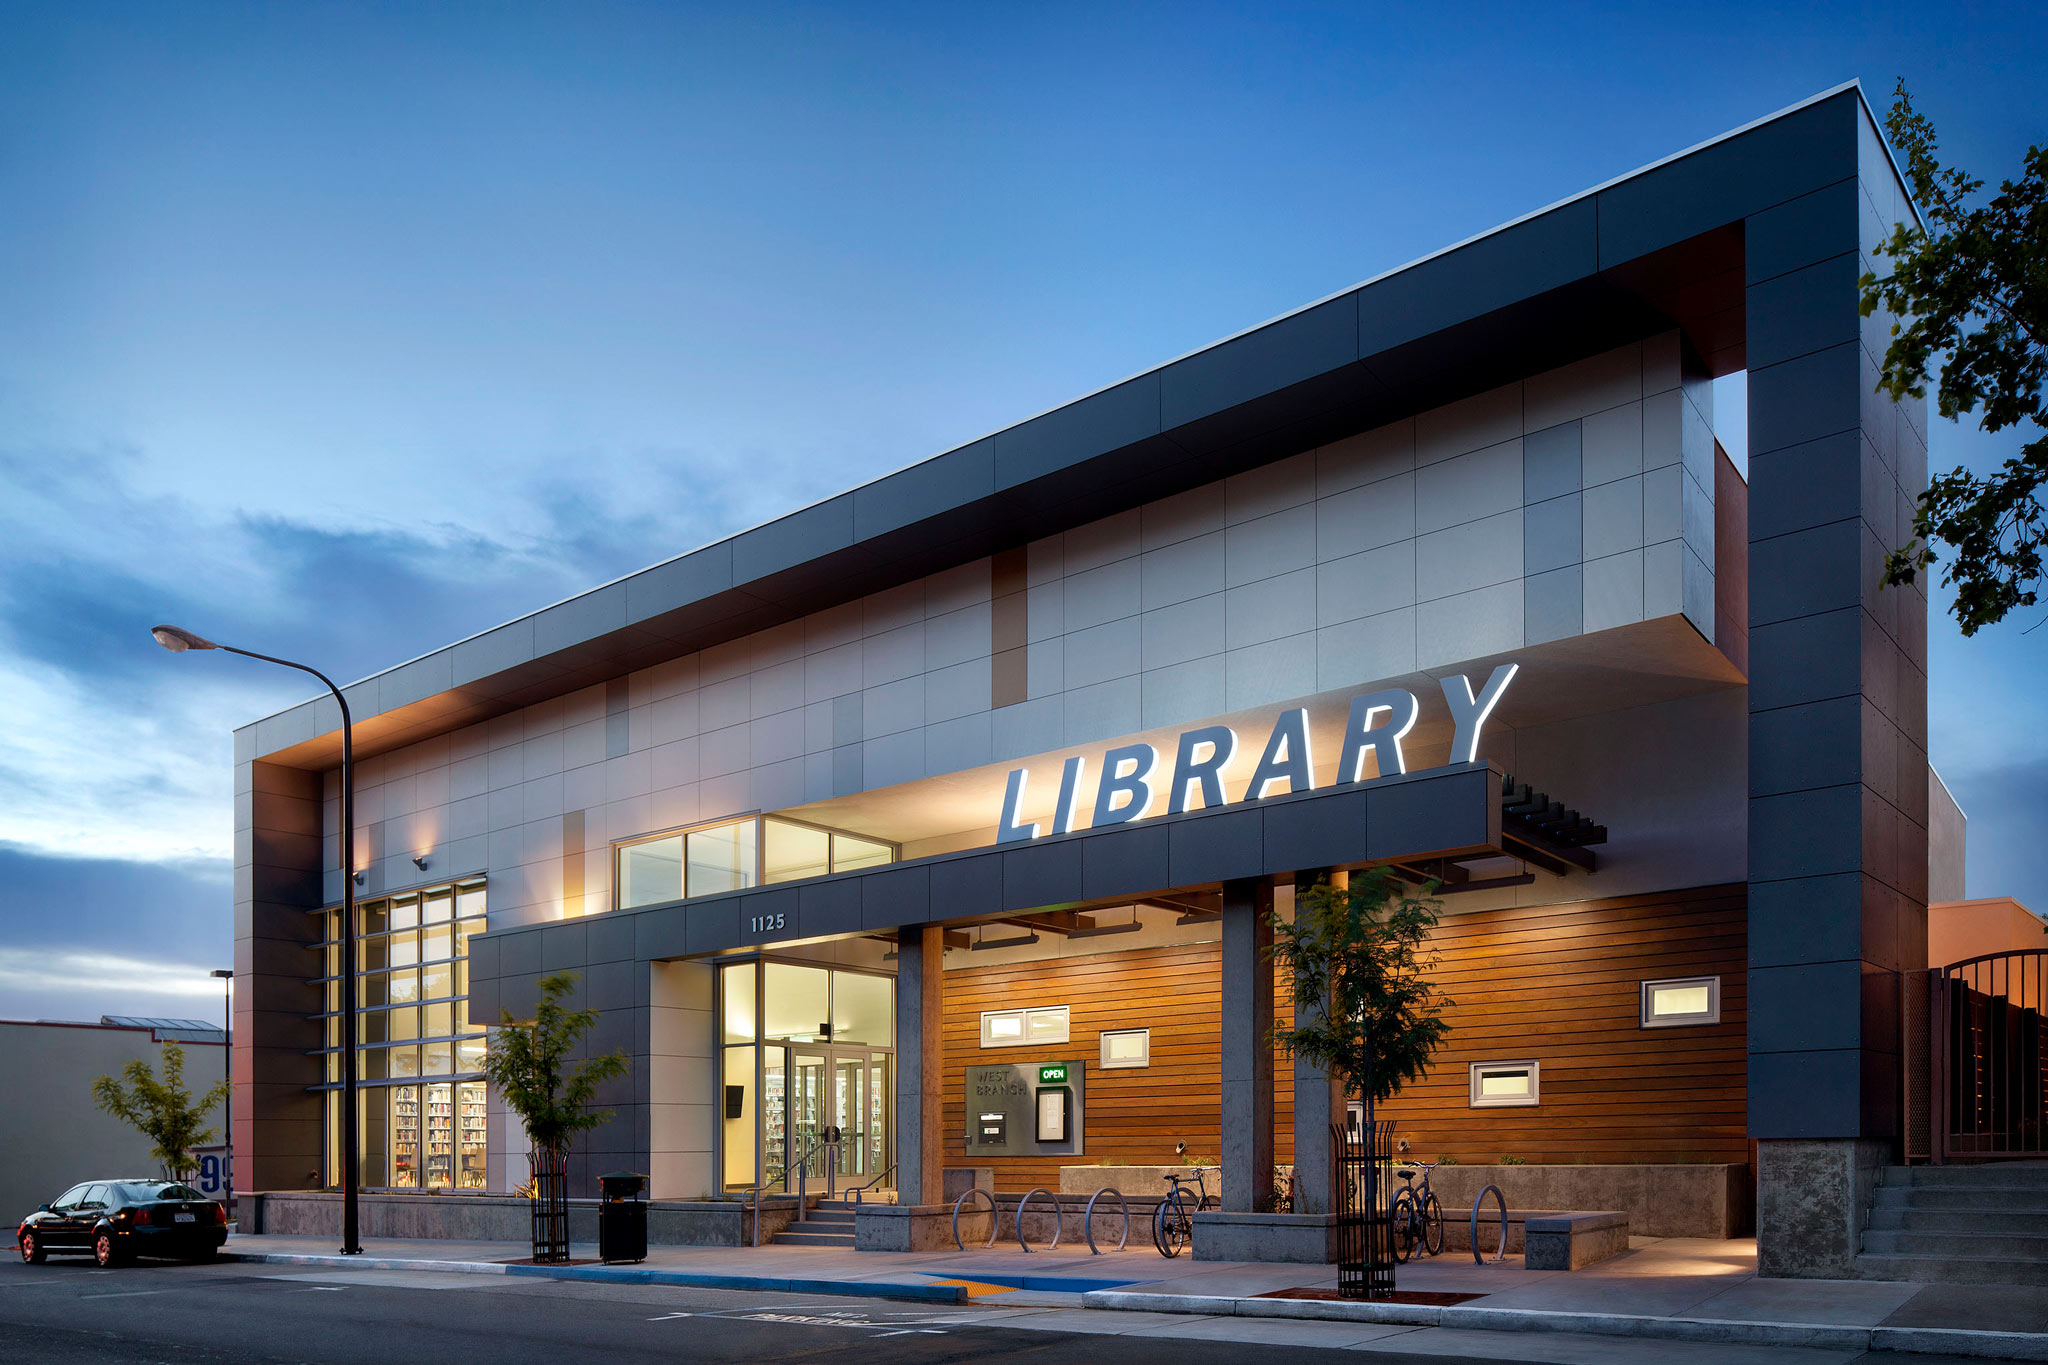 Library Exterior Lighting